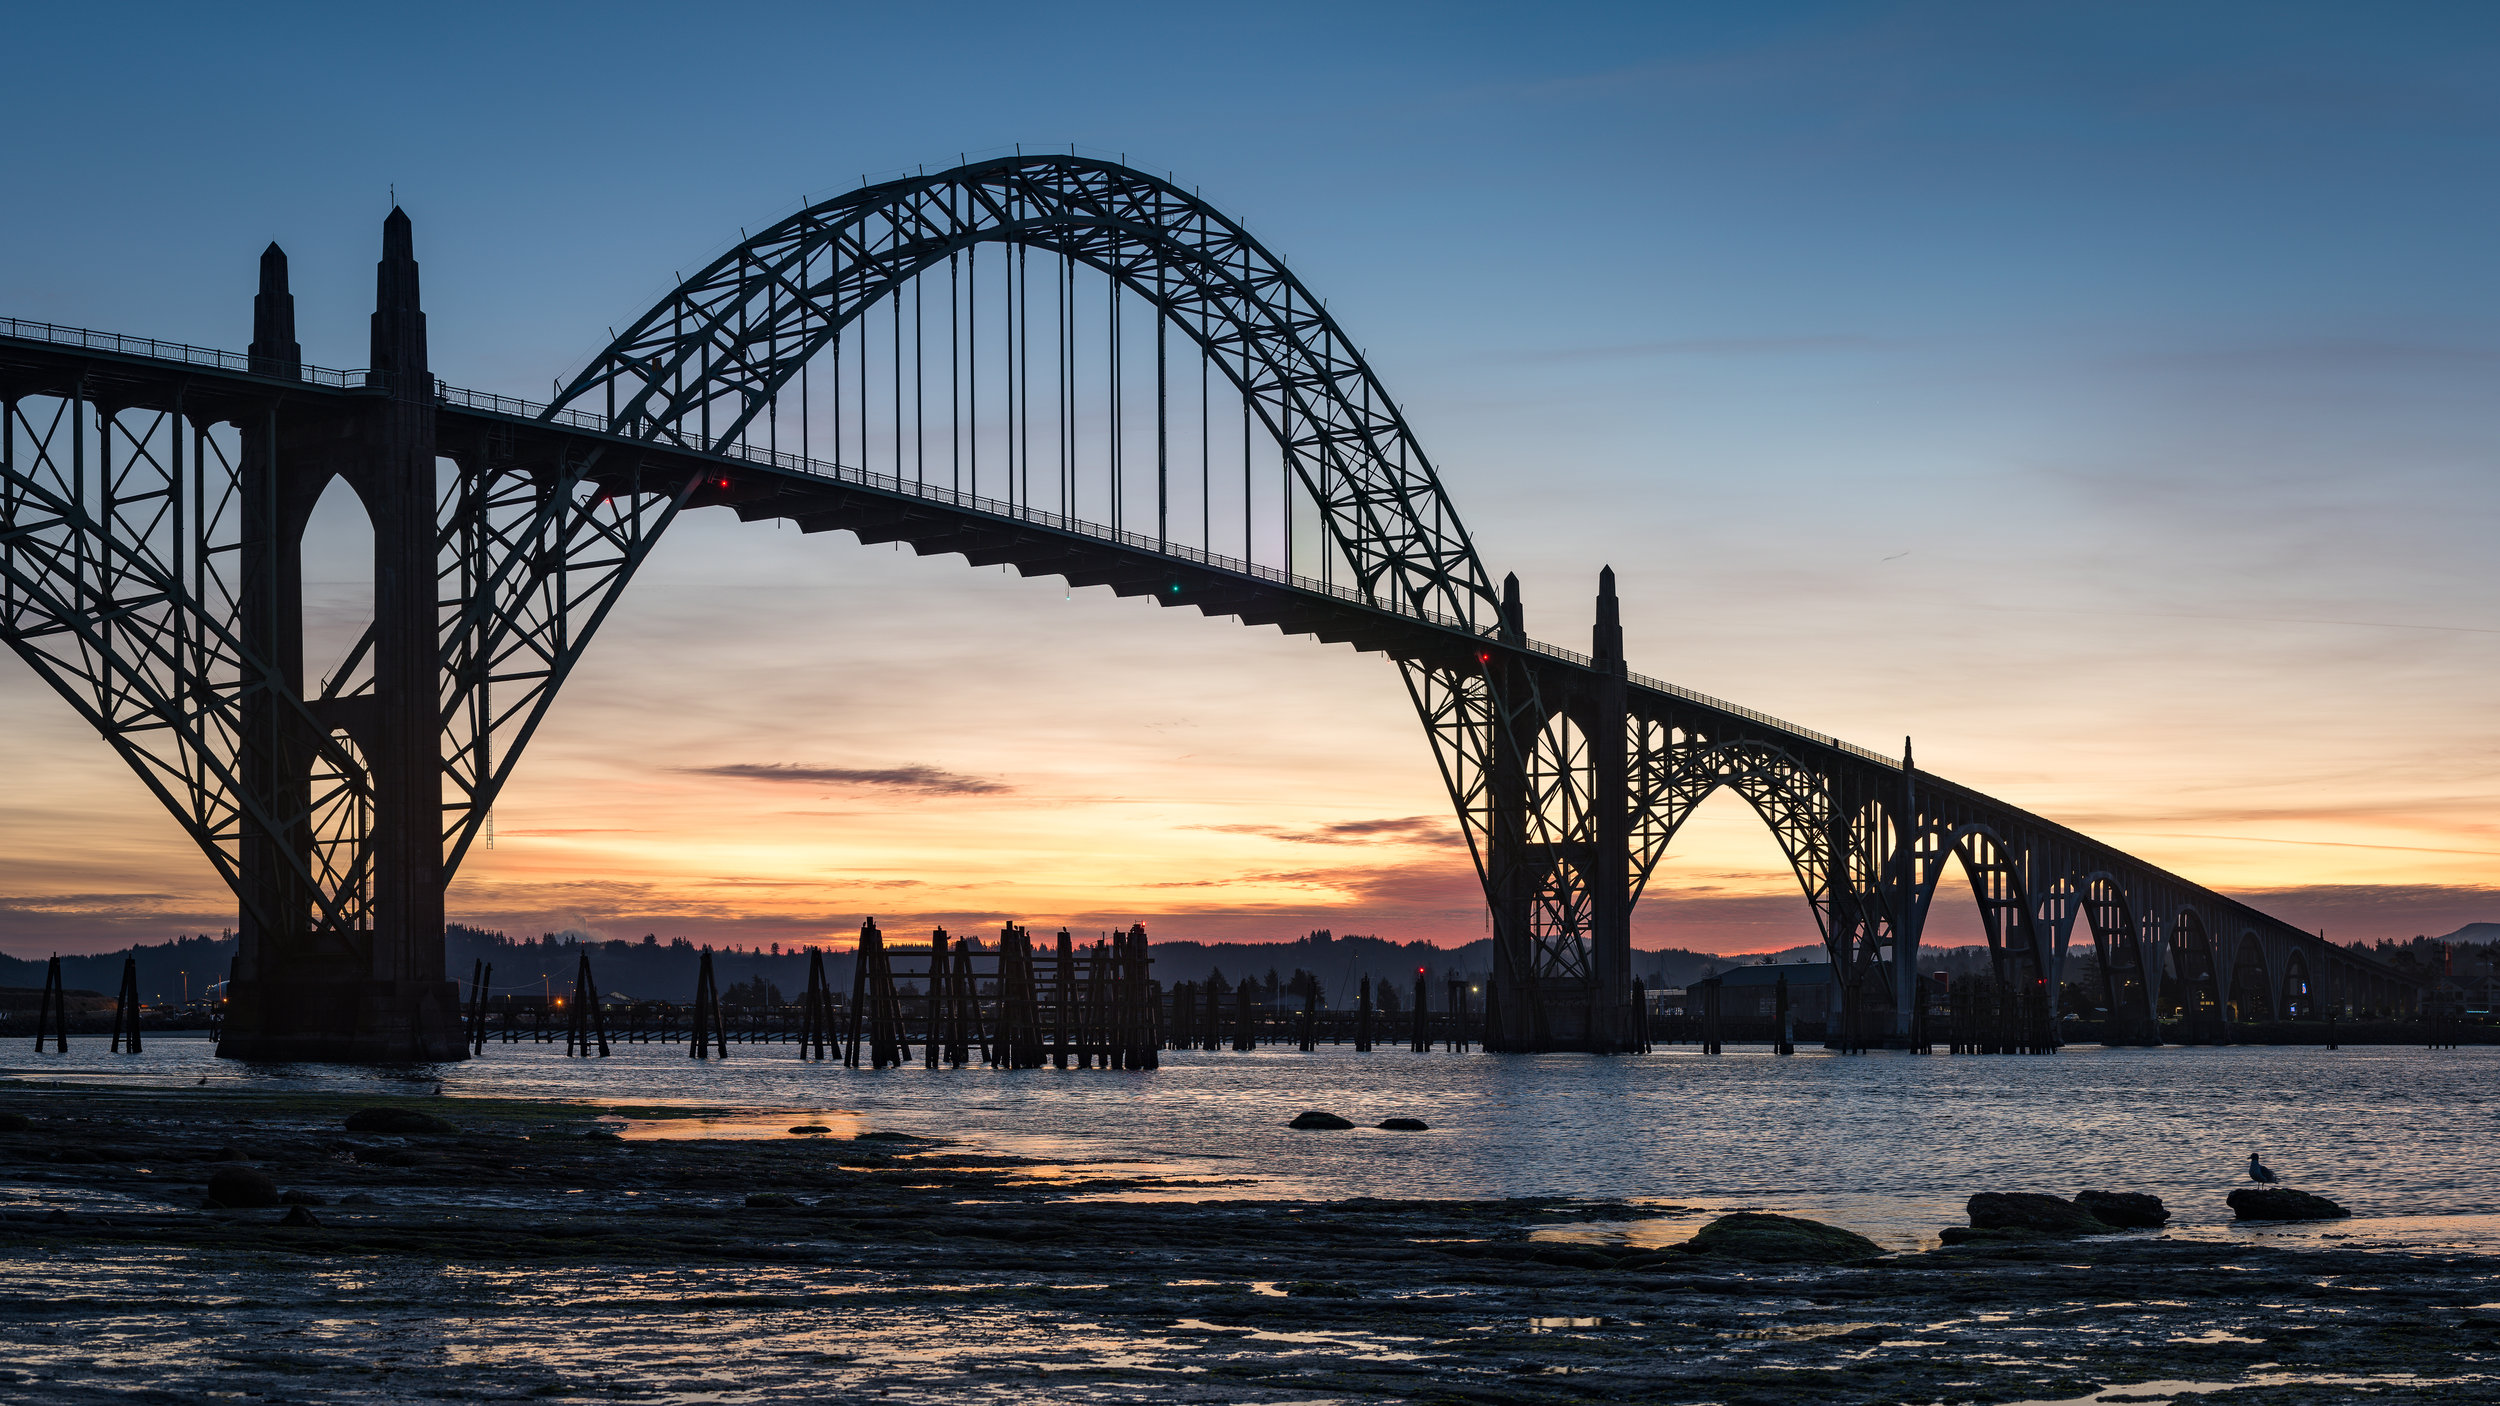 Newport Bridge during the sunrise on Saturday morning.